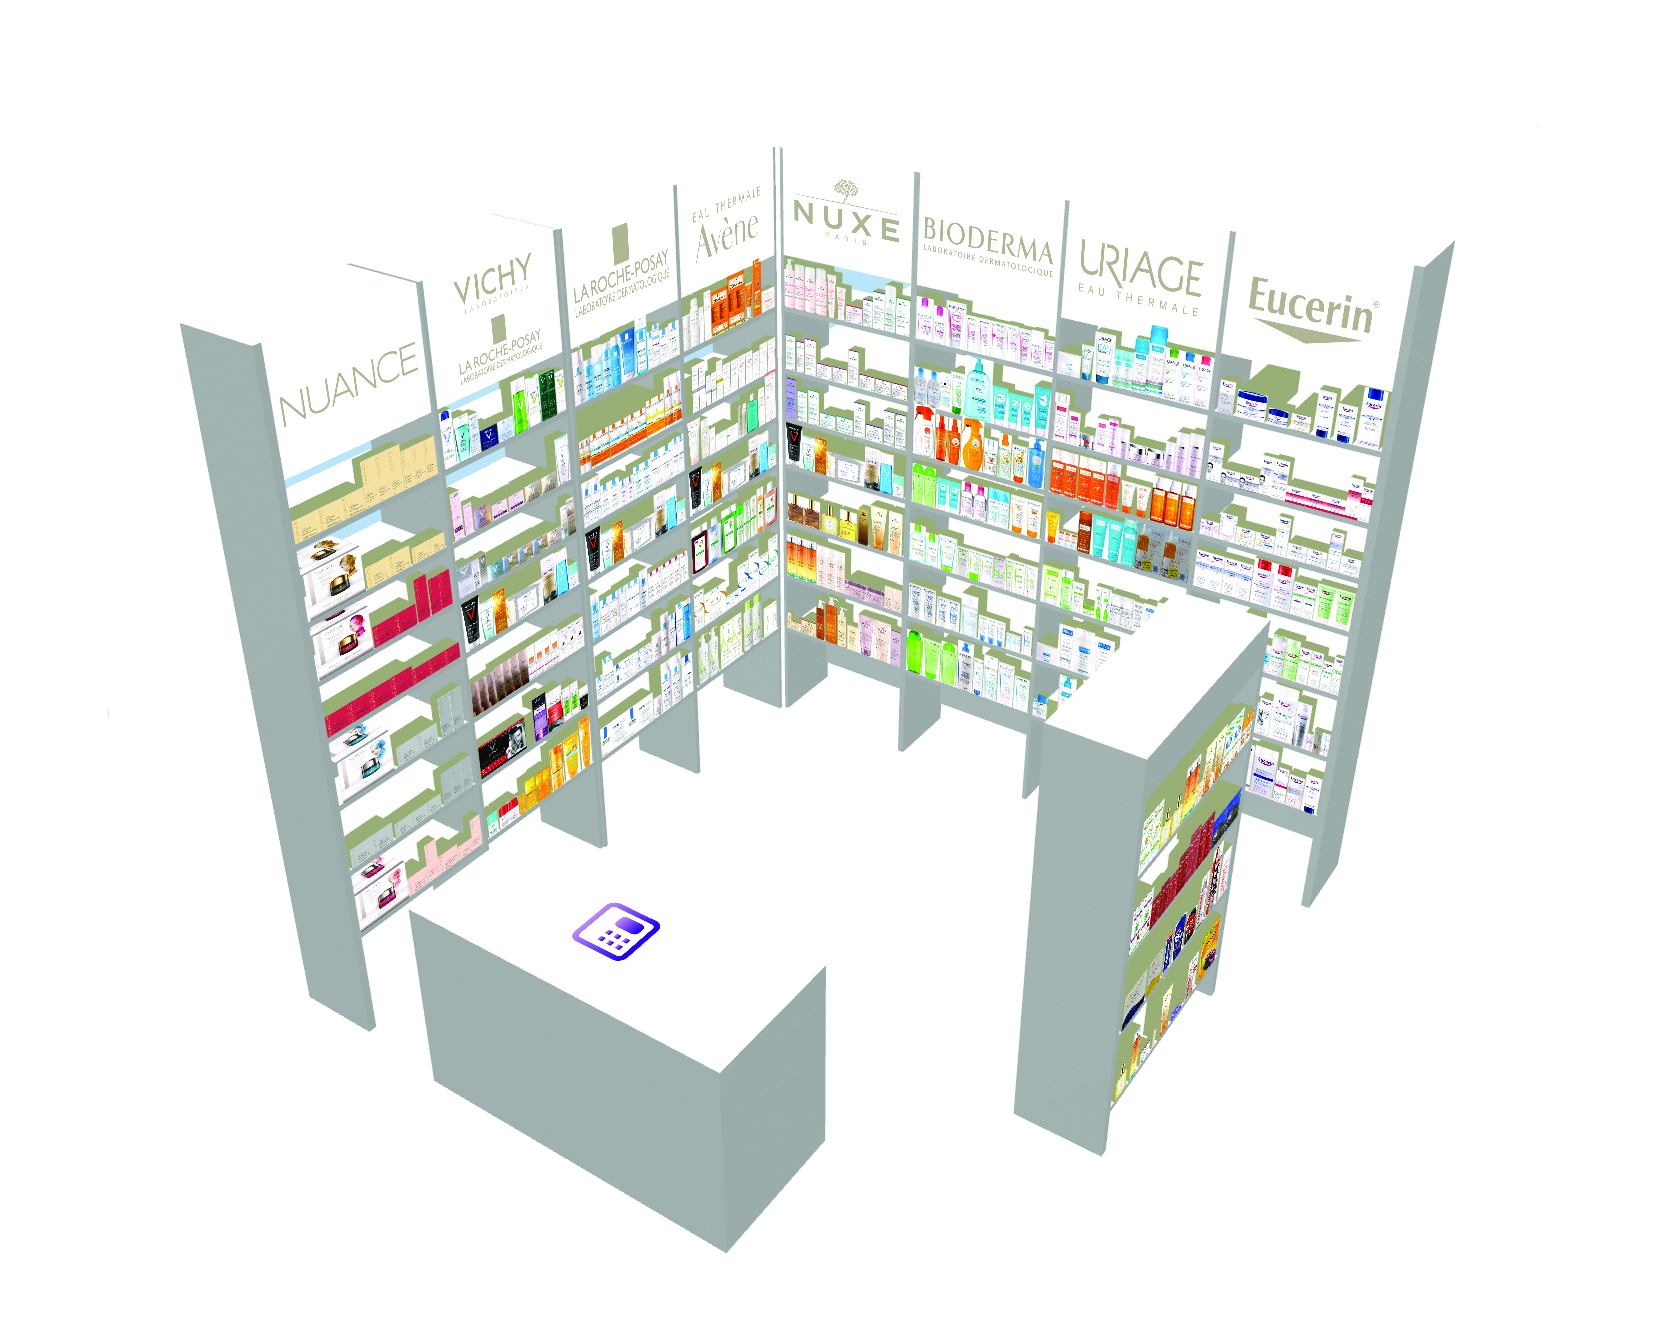 3D Store Generated Automatically from 2D Floor Plan and Planograms